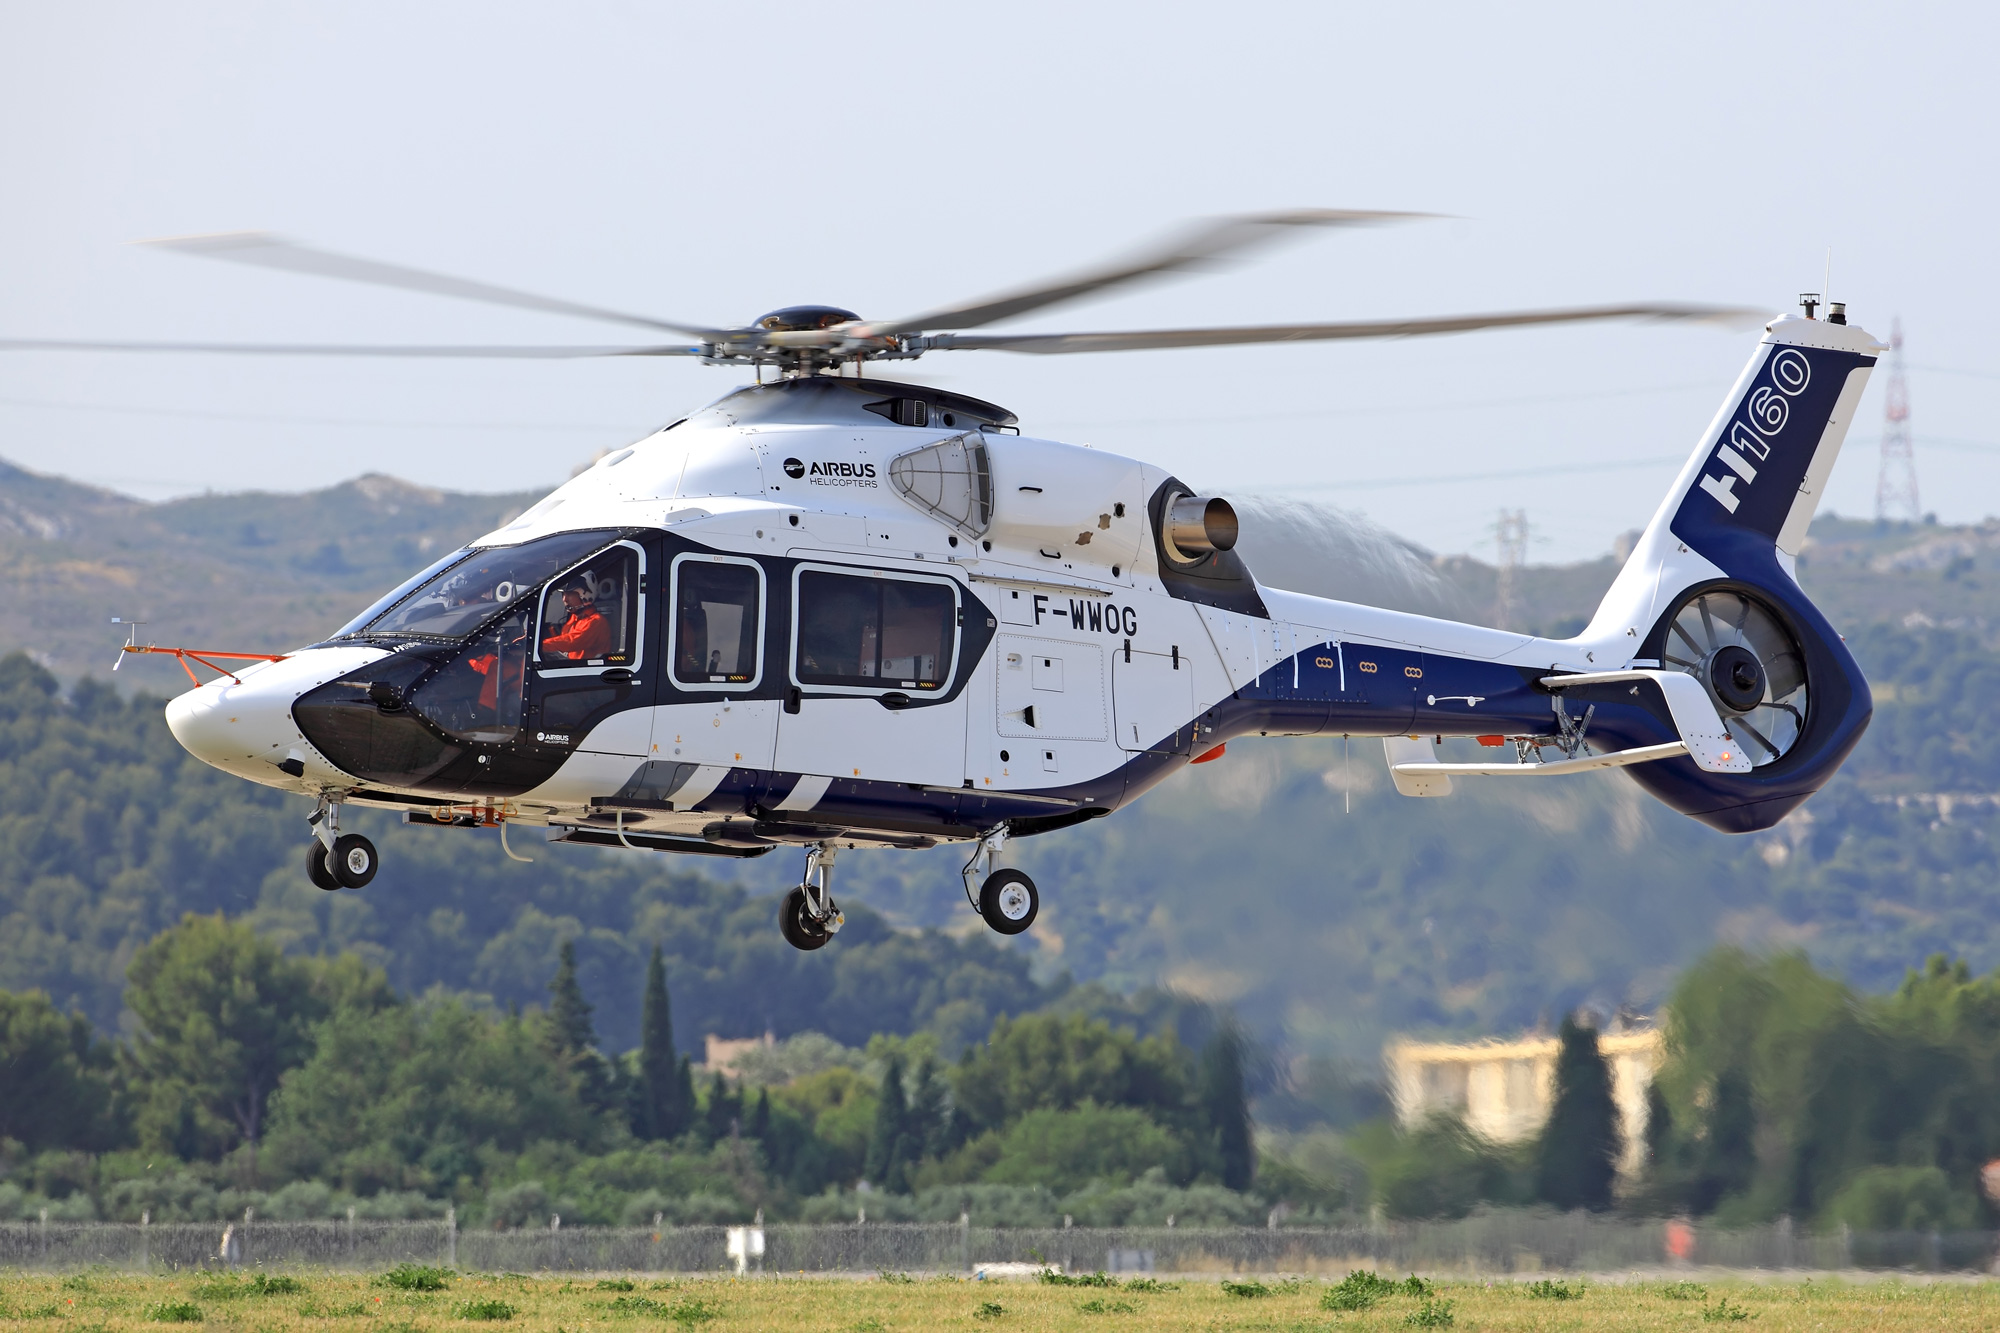 helicopter flight services with Airbus Helicopters H160 Enters Flight Test Phase on Helicopter besides H160 204 additionally Airplane takeoff 3d 744075 likewise Robinson R44 together with Tiger 51.